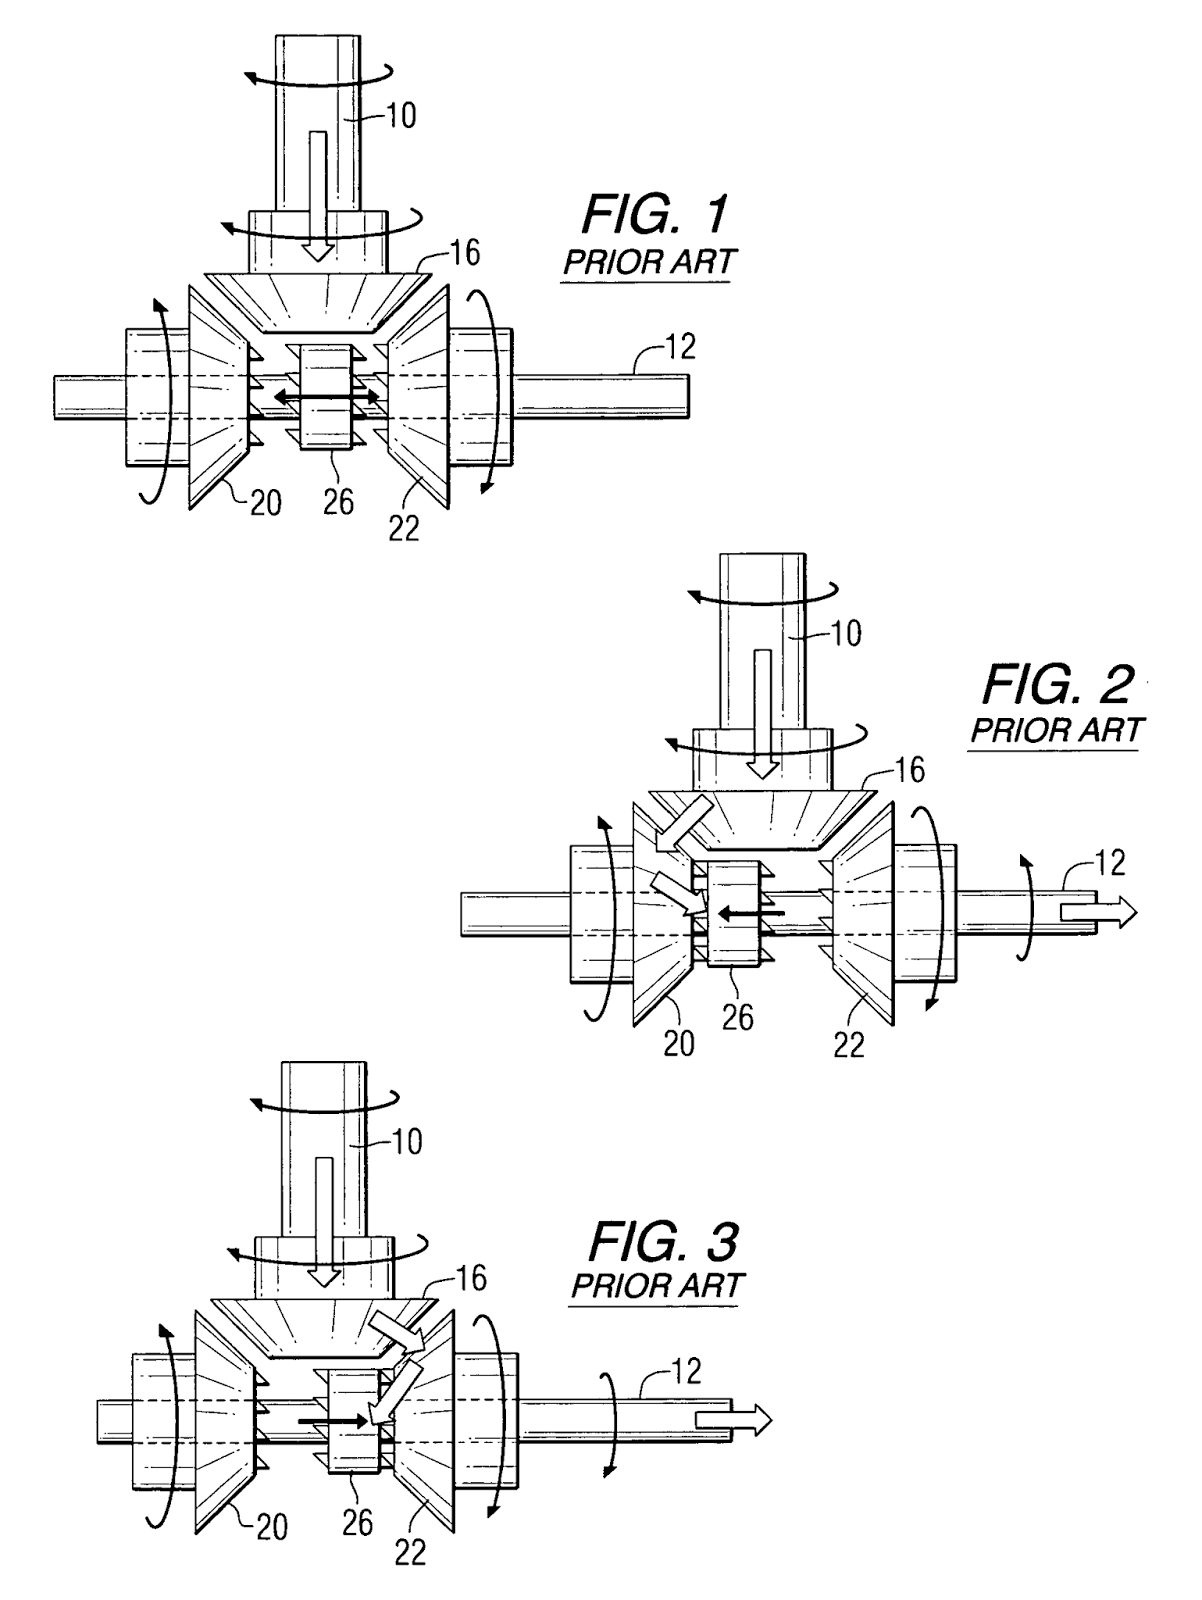 medium resolution of 9 1983 discloses a system marine drivetrain a drive assembly reversal double cone clutch for a boat comprising a horizontal input shaft